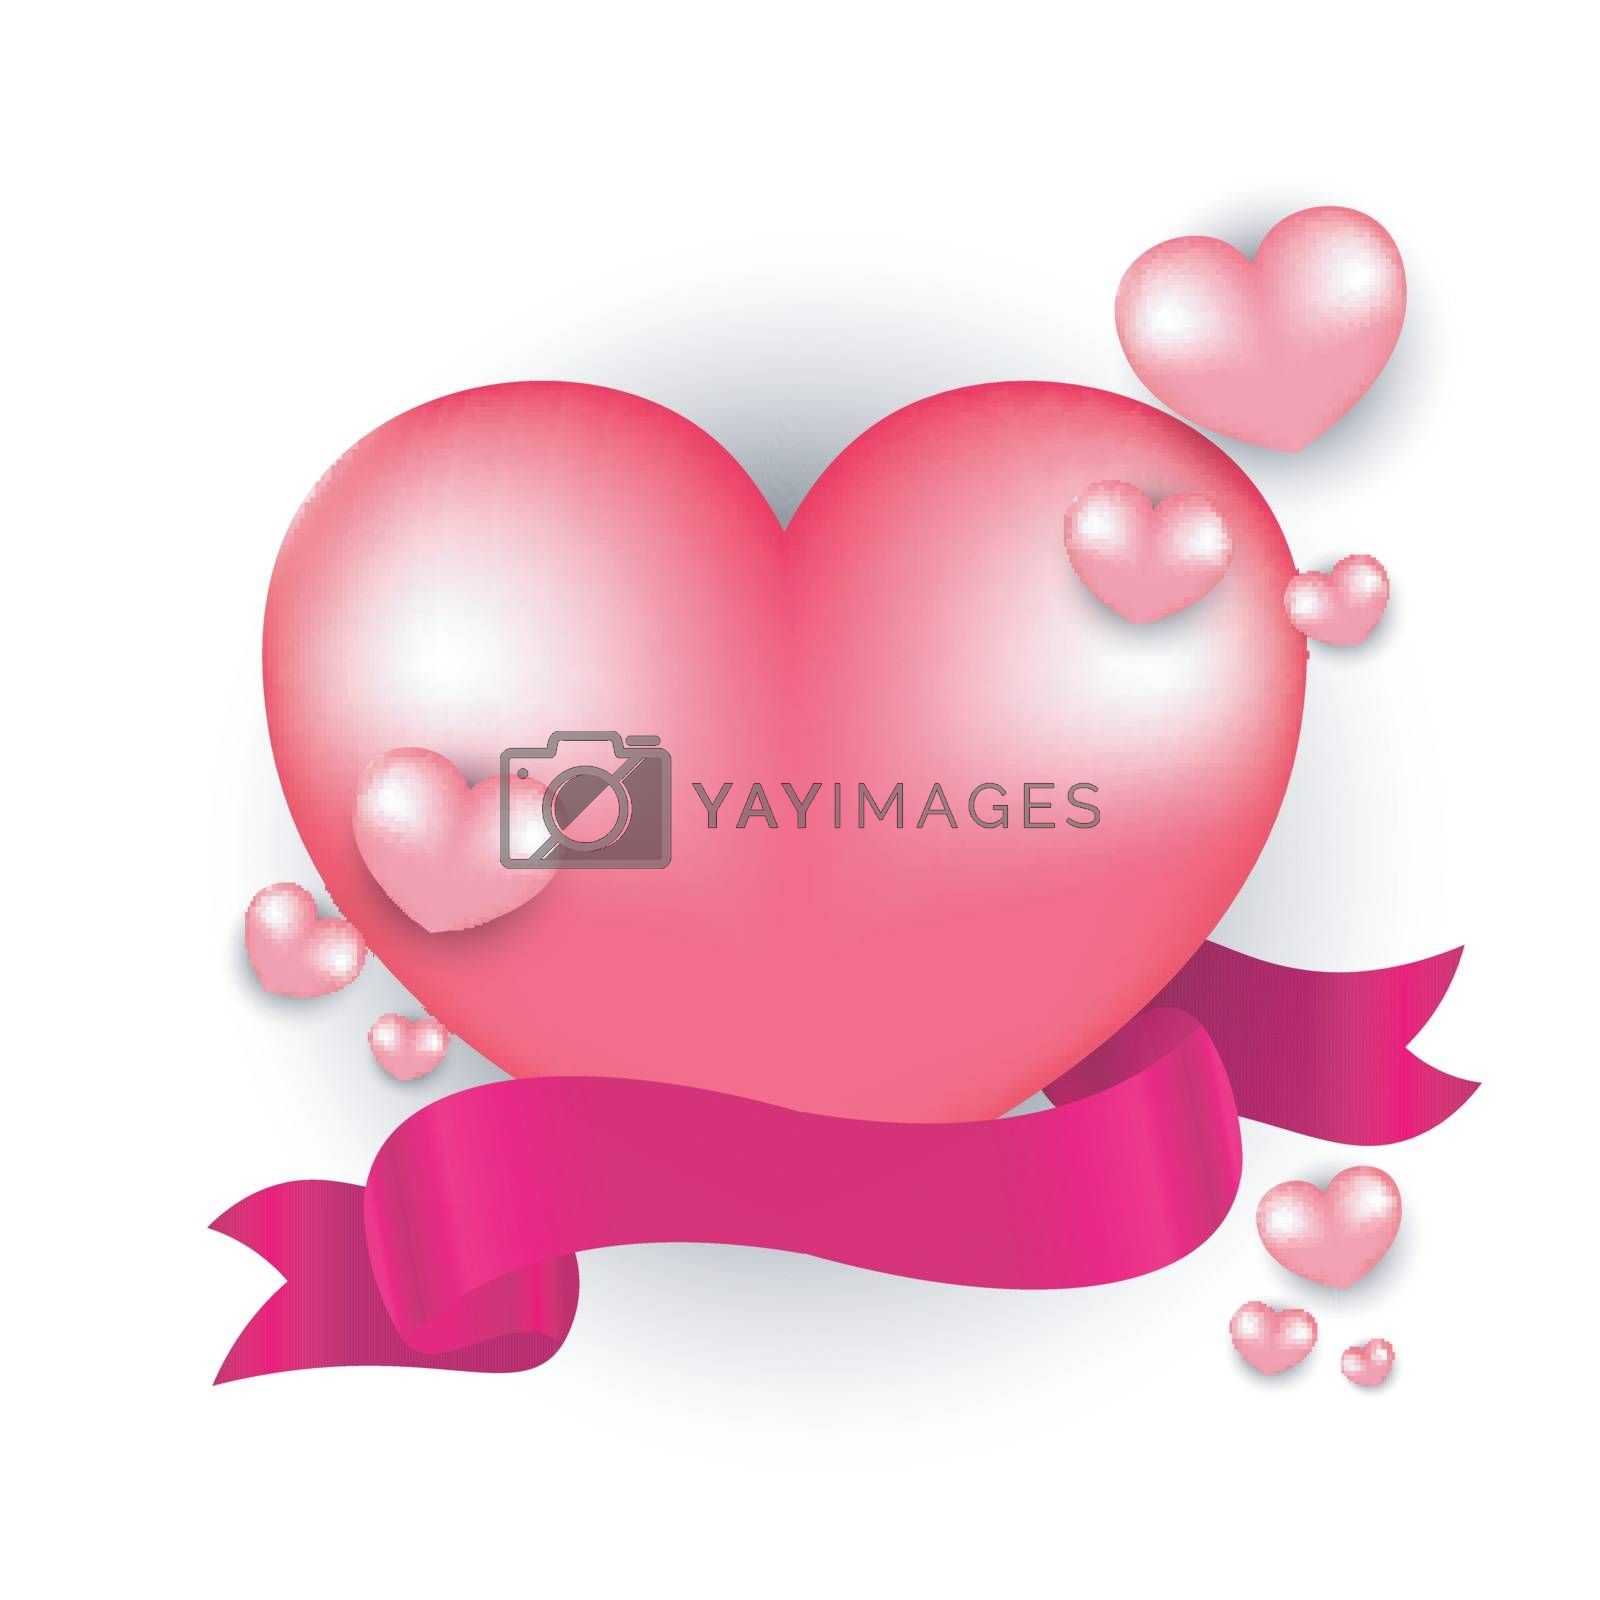 Glossy heart shapes with ribbon on white background for valentine's day celebration.